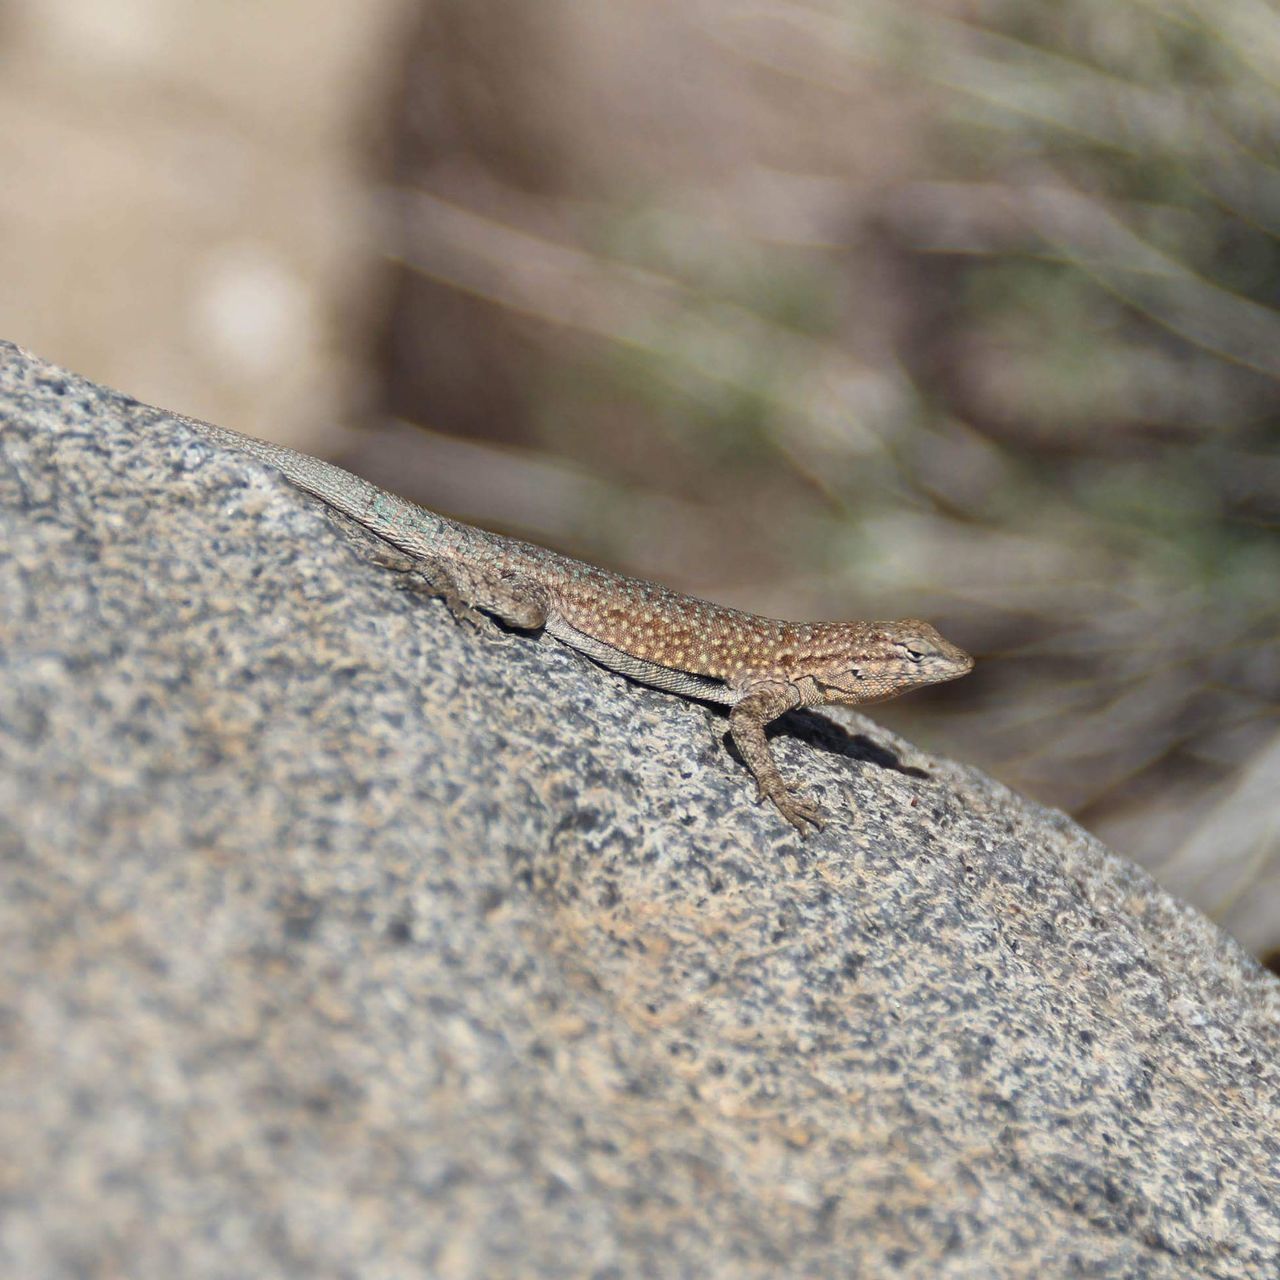 one animal, animals in the wild, animal themes, day, outdoors, reptile, animal wildlife, selective focus, nature, no people, close-up, full length